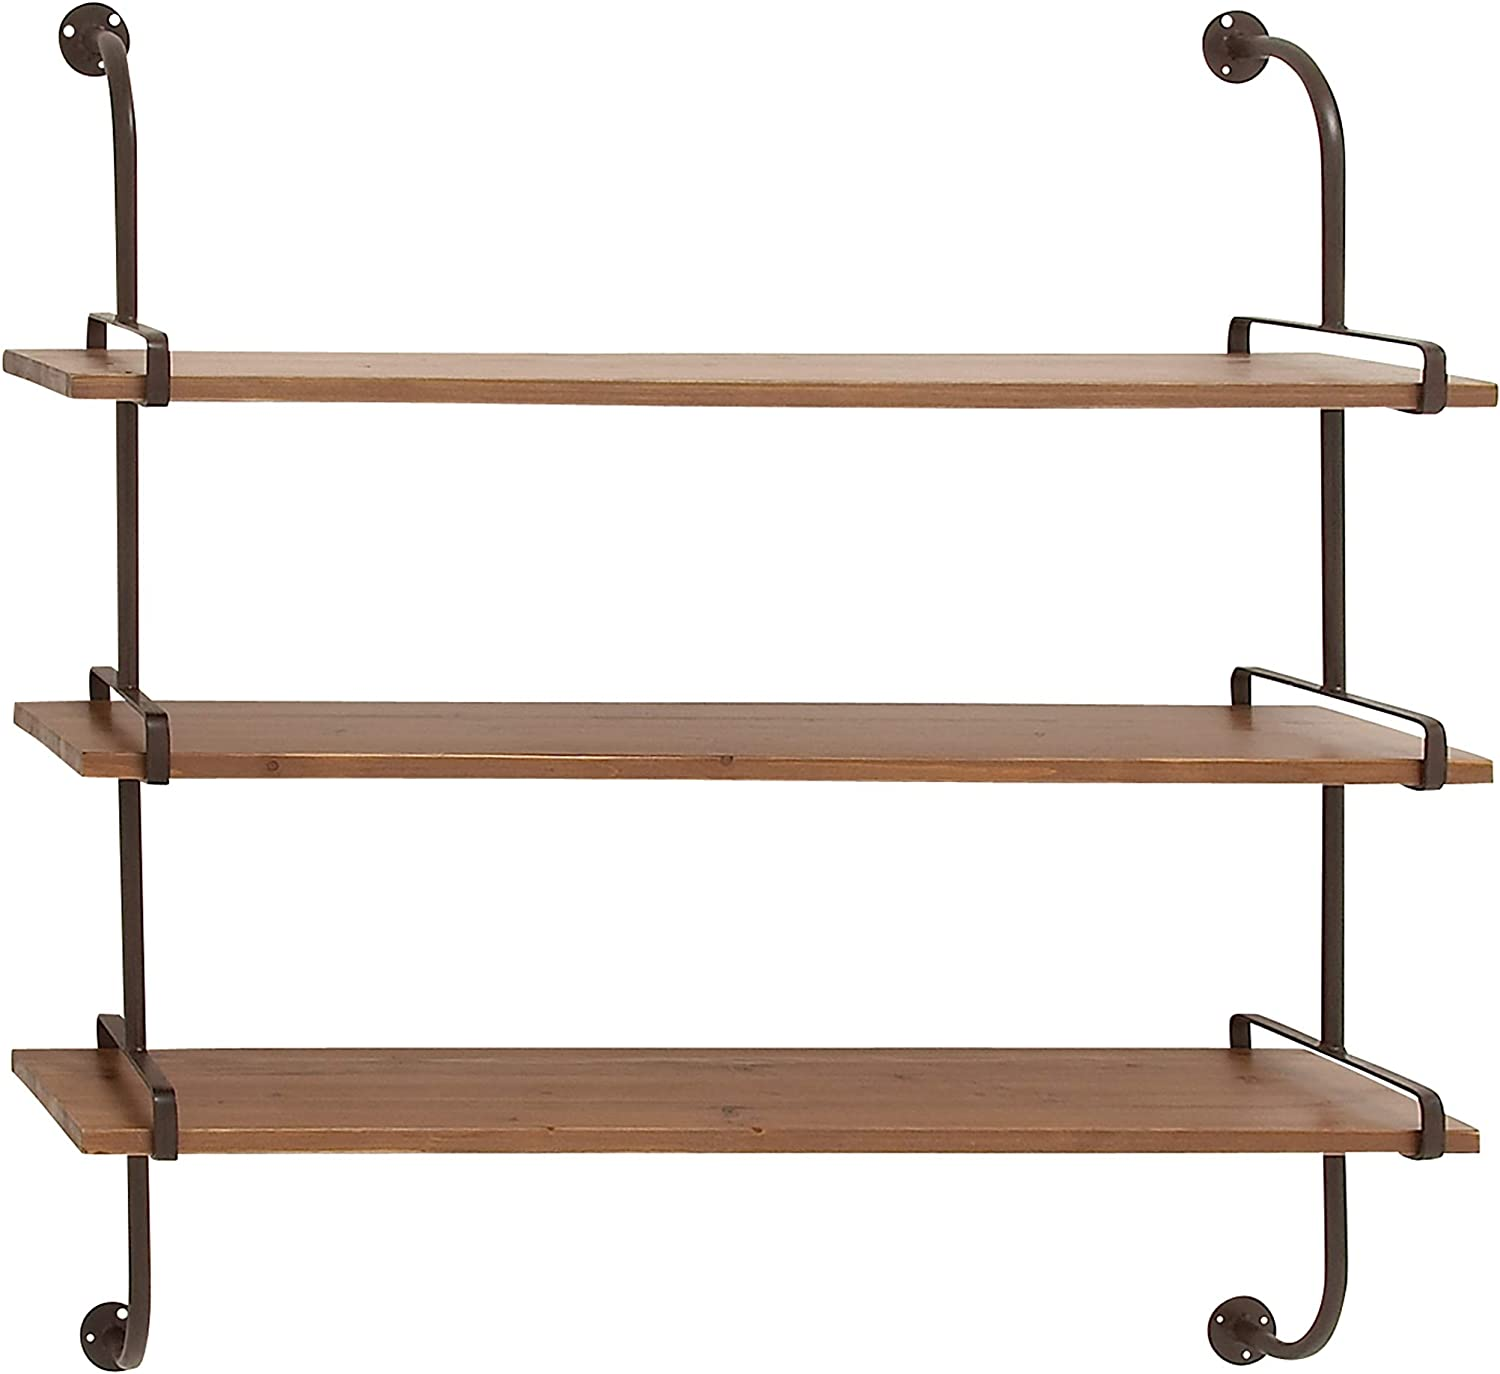 Amazon Com Deco 79 Rustic Metal 3 Tiered Wall Shelf 38 H X 38 L Natural Wood Brown Finish Home Kitchen